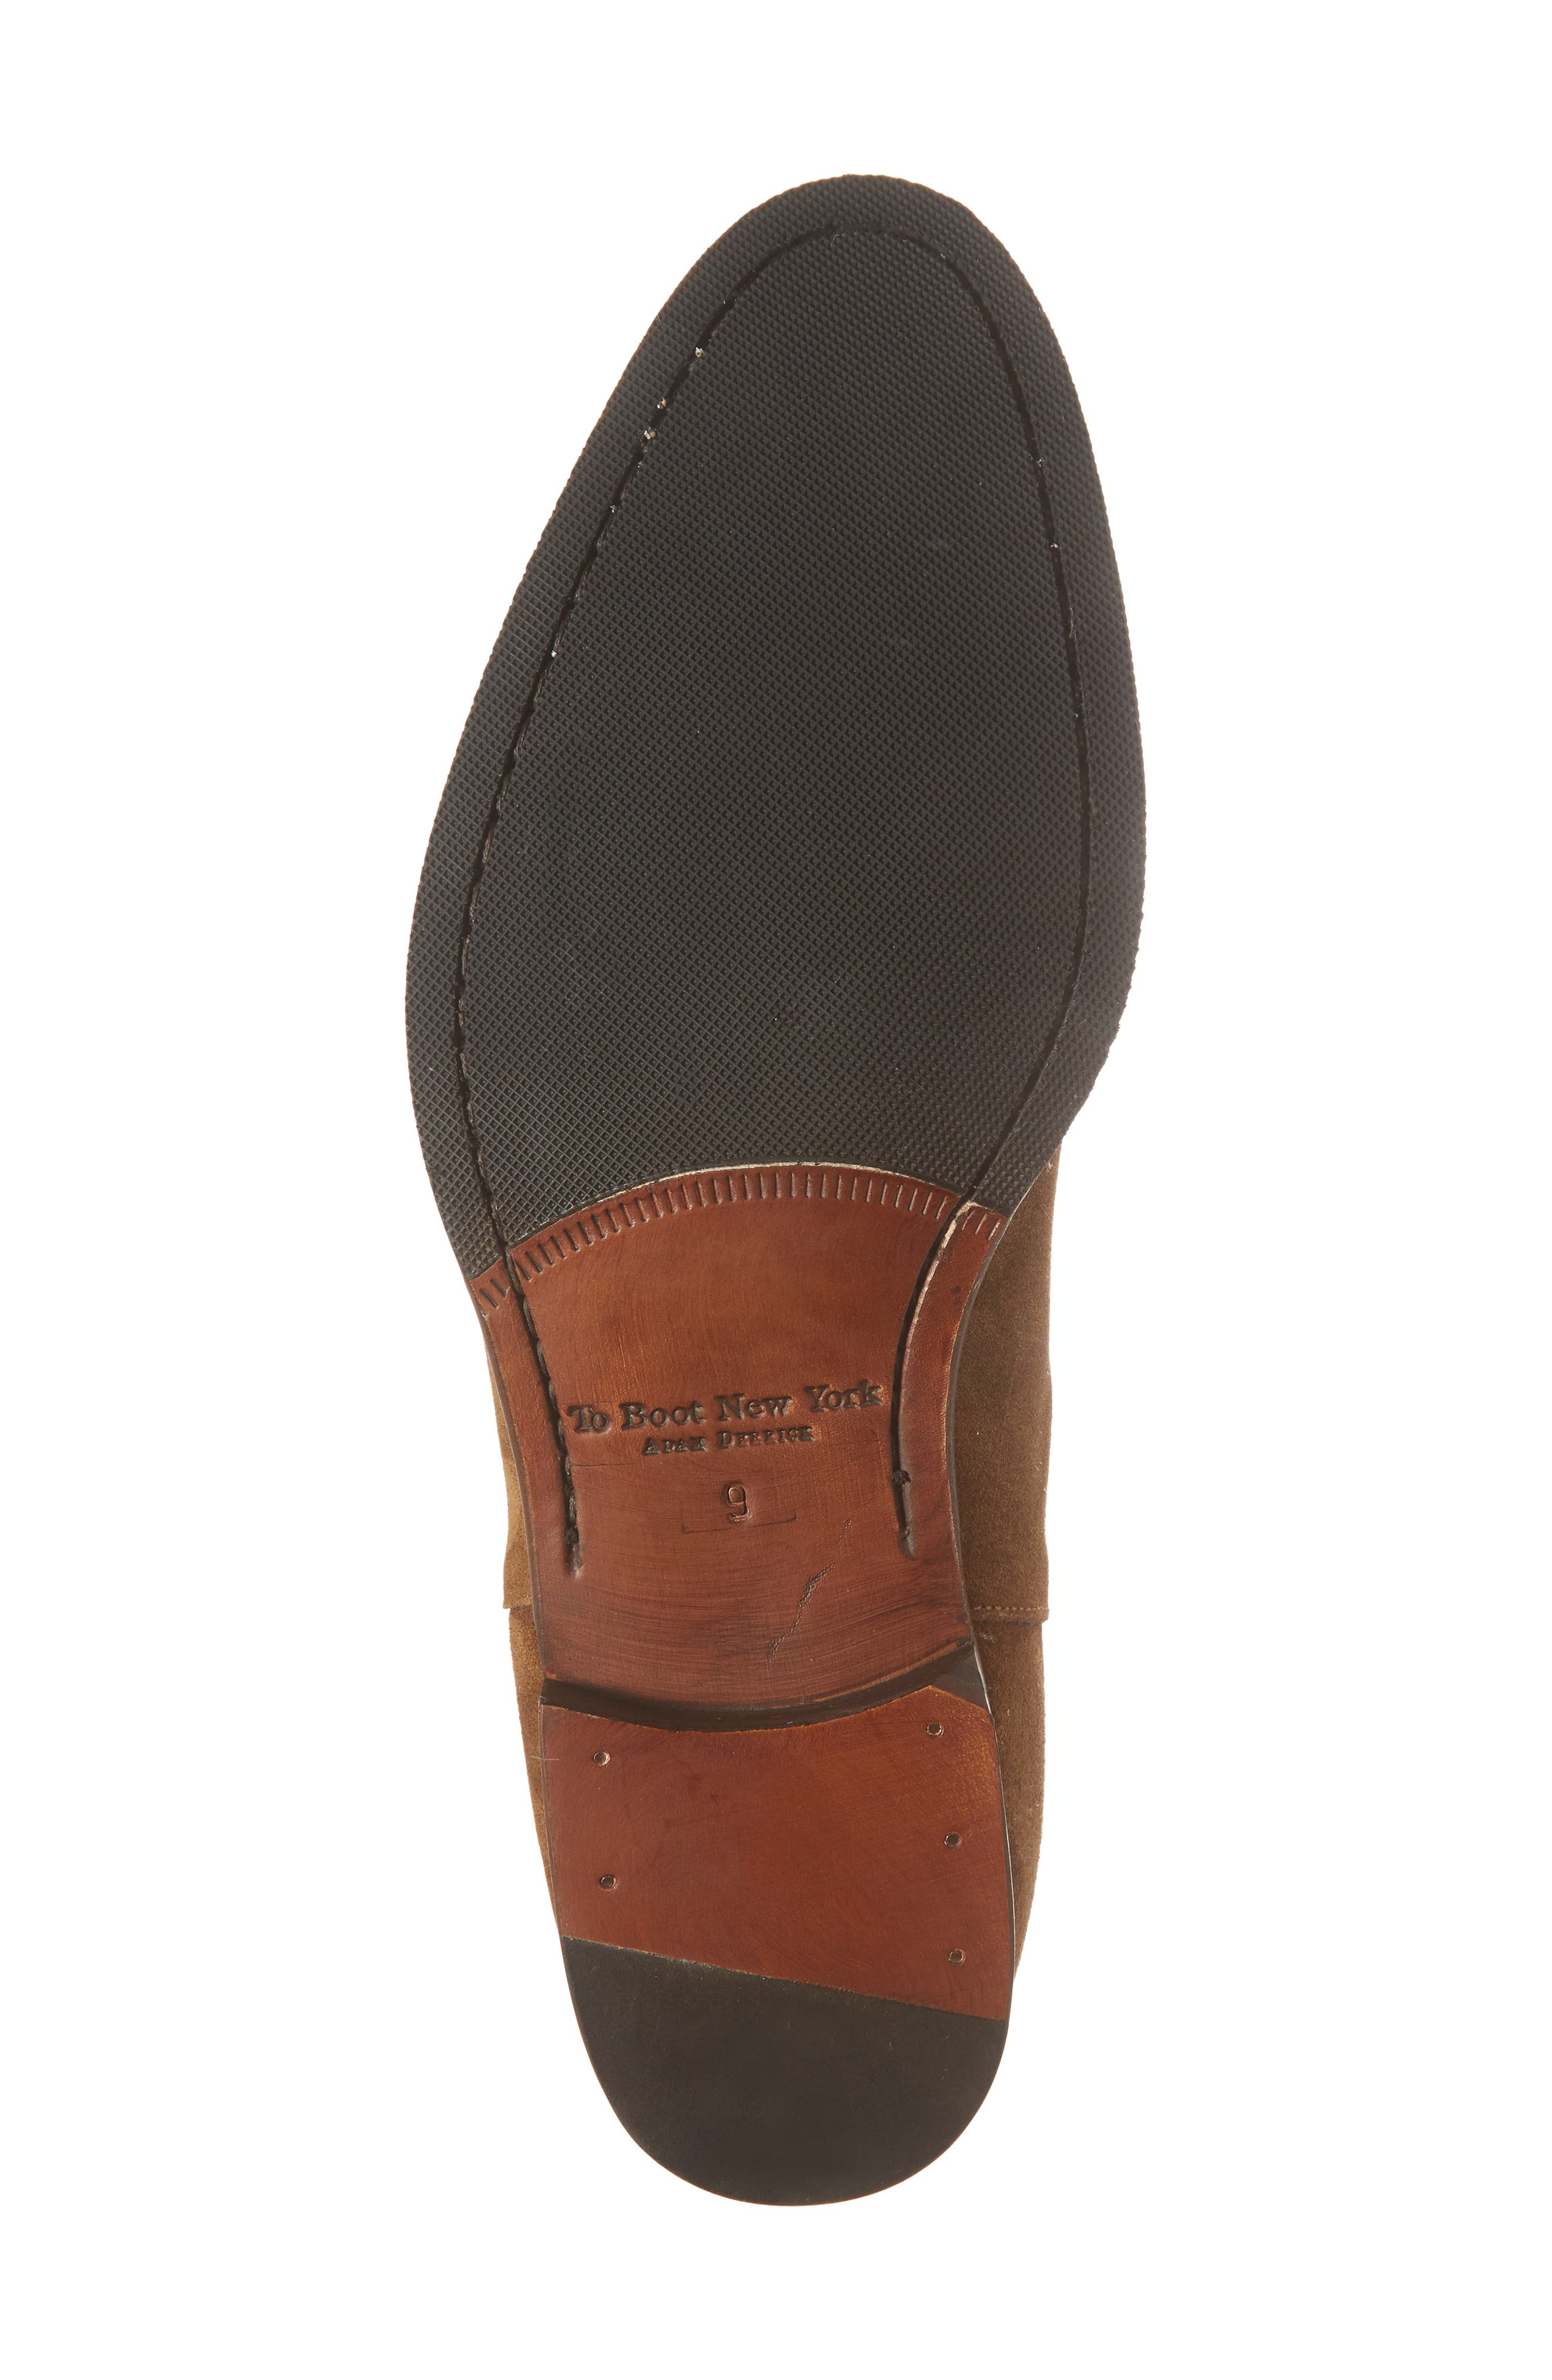 TO BOOT NEW YORK, Shelby Mid Chelsea Boot, Alternate thumbnail 6, color, MID BROWN SUEDE